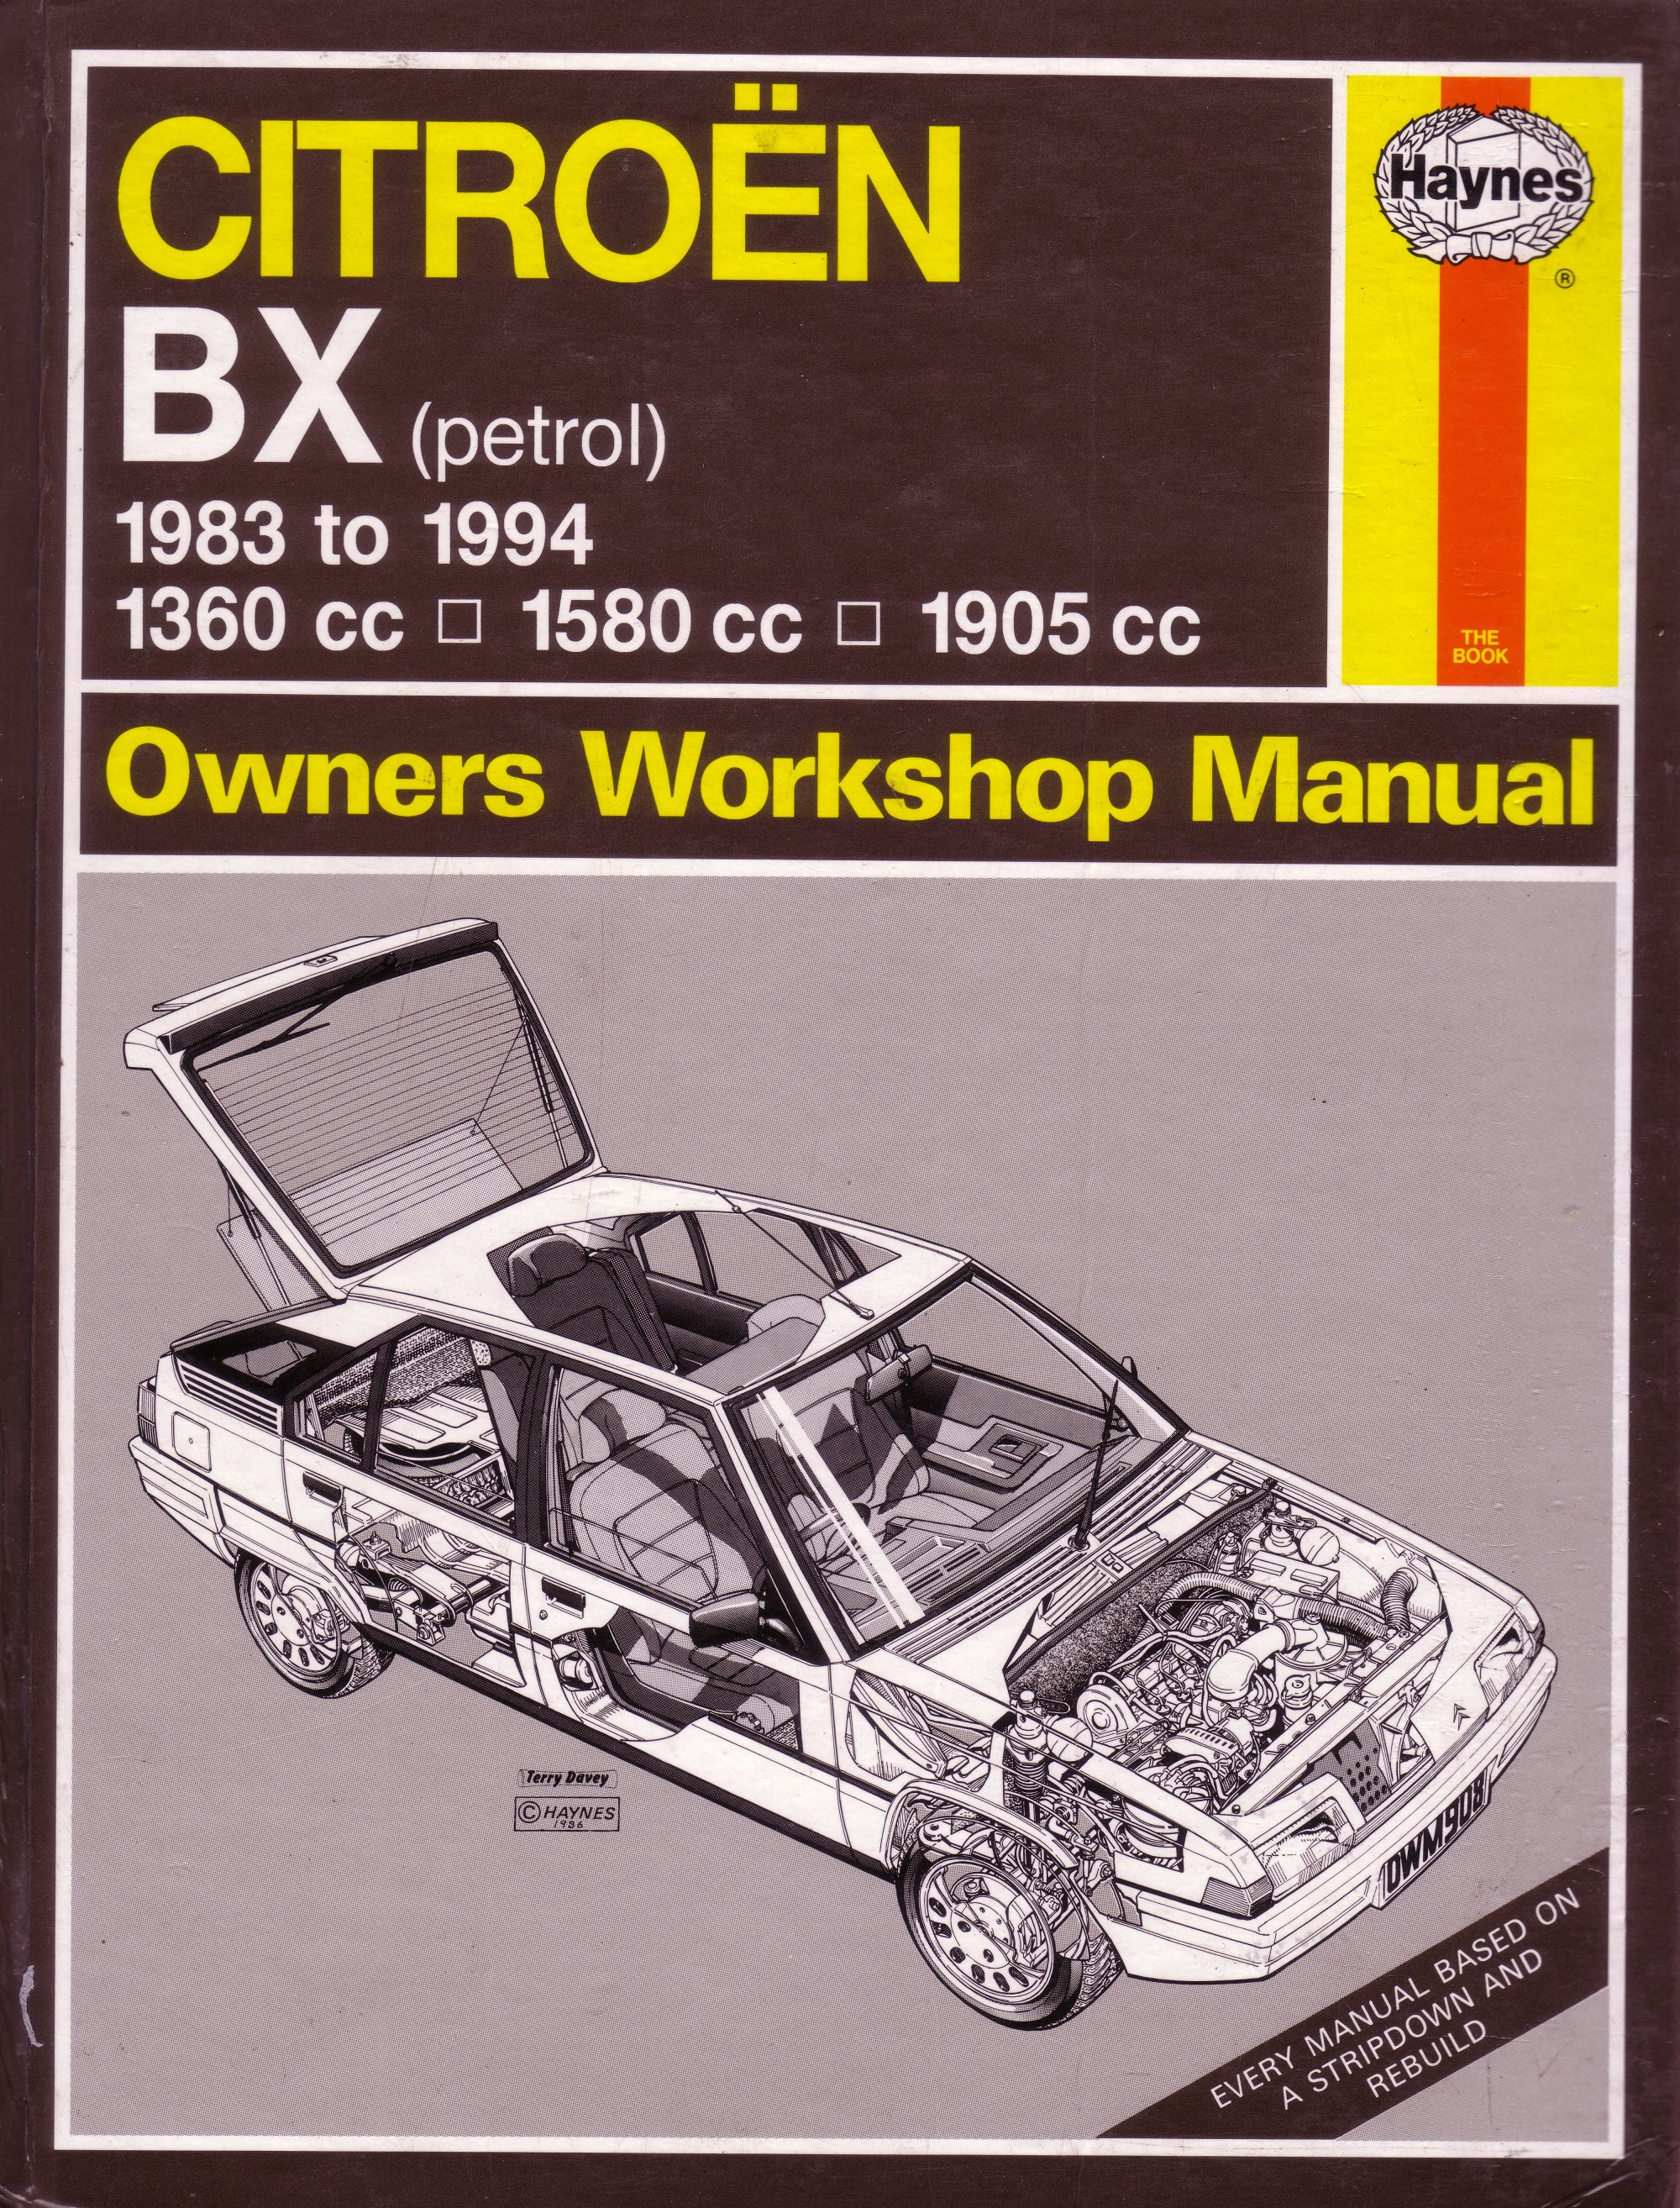 jaguar xj6 and xj sovereigndaimler sovereign 1968 86 series 1 2 and 3 owners workshop manual service repair manuals by haynes j h strasman peter g published by haynes manuals inc 1988